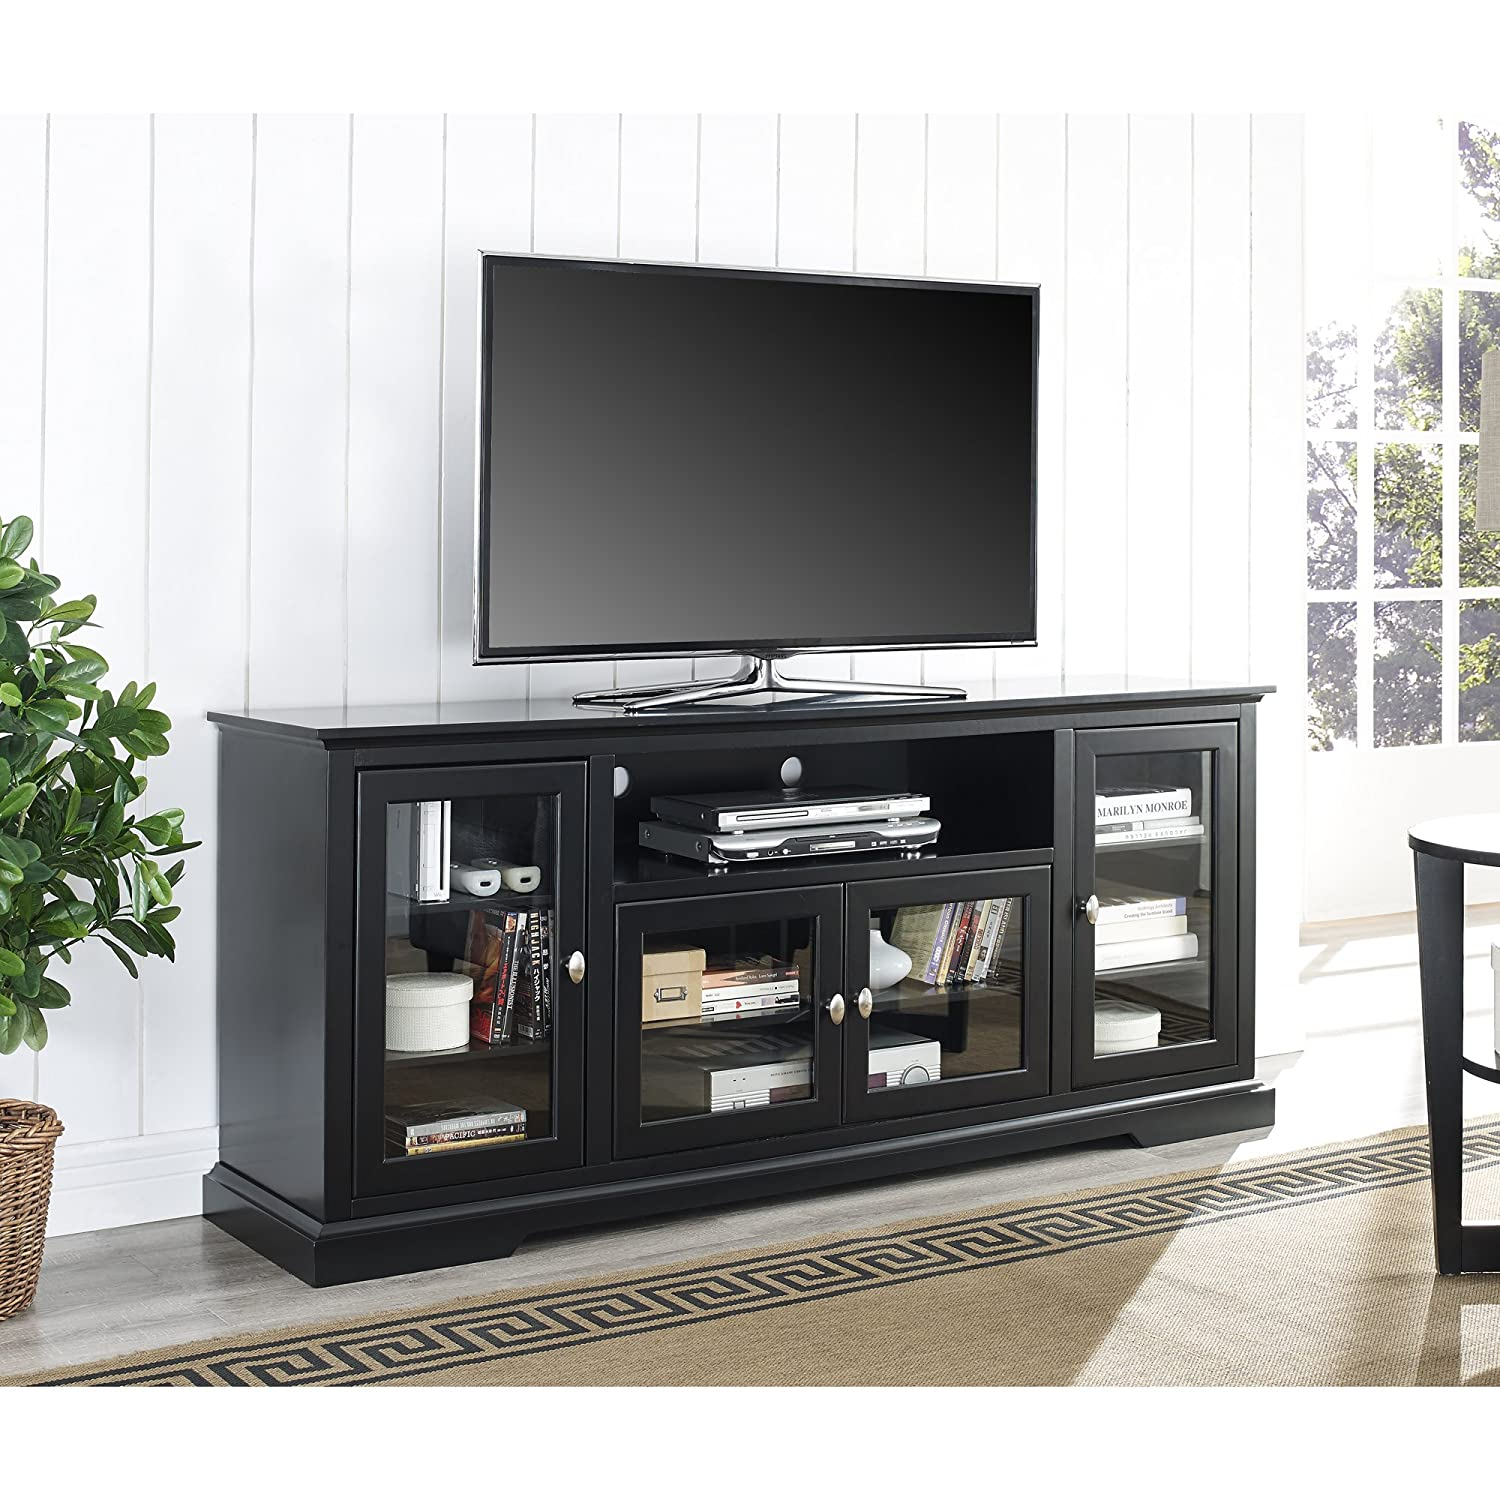 Amazoncom WE Furniture 70 Highboy Style Wood TV Stand Console